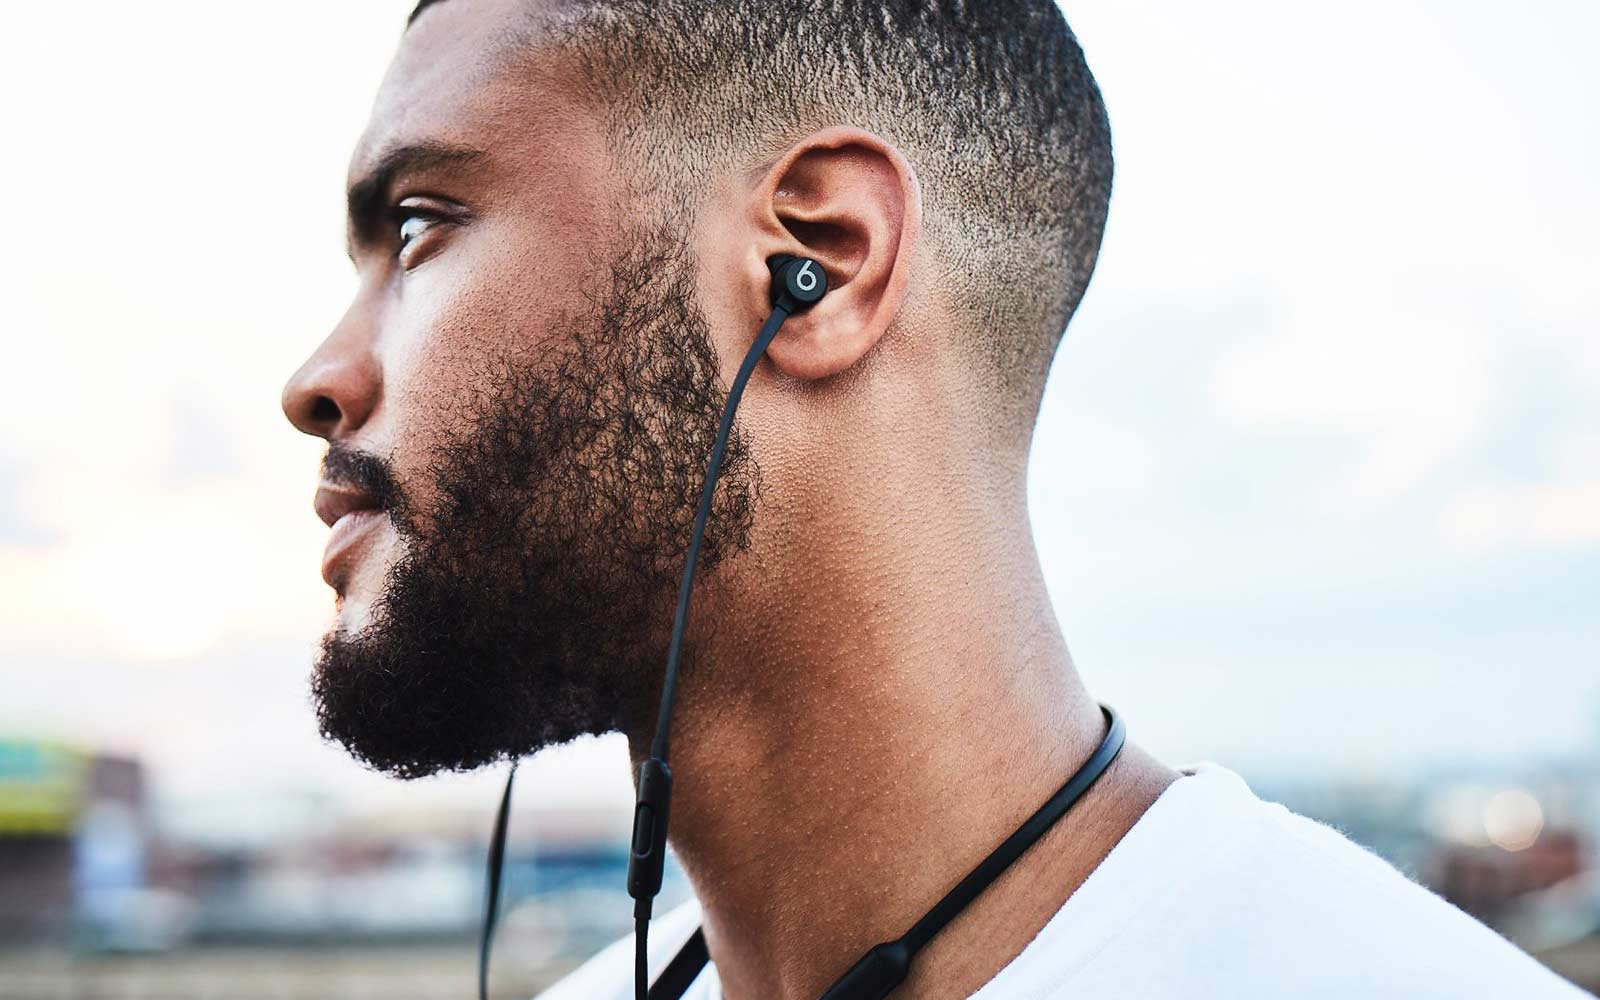 Apple BeatsX Wireless Headphones to be Released Feb. 10